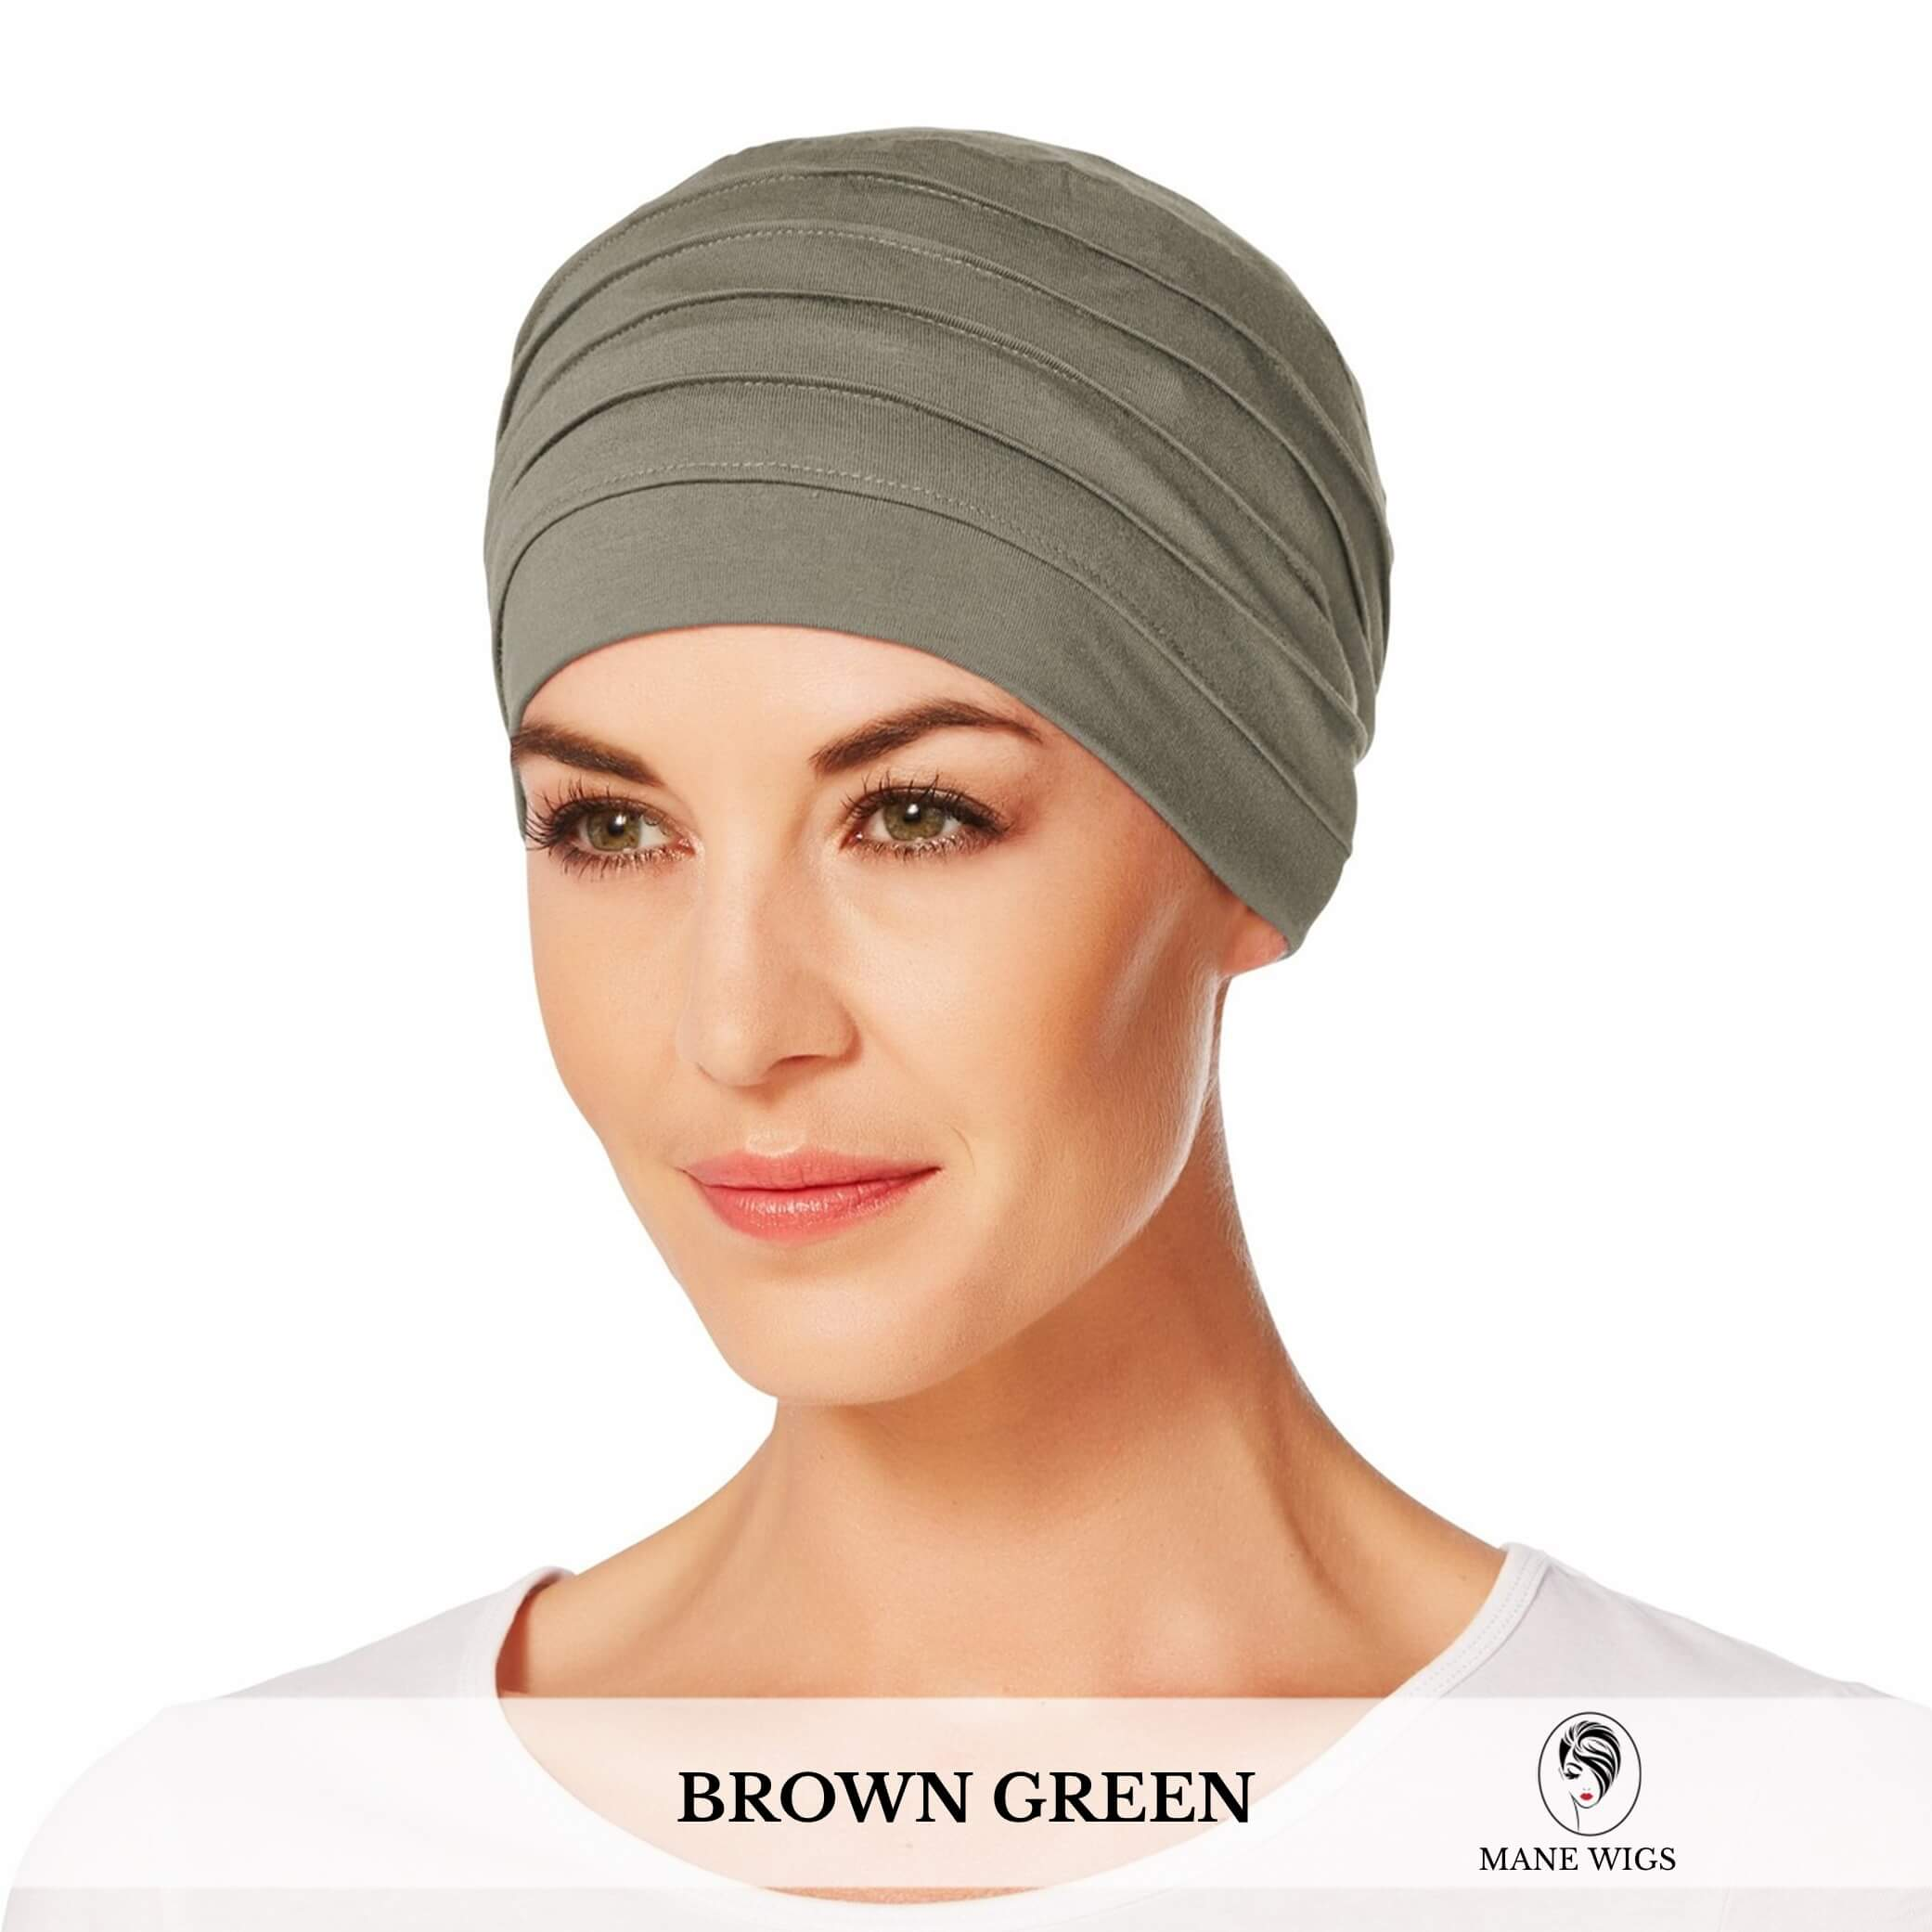 Christine Headwear Yoga Turban 338-Brown Green